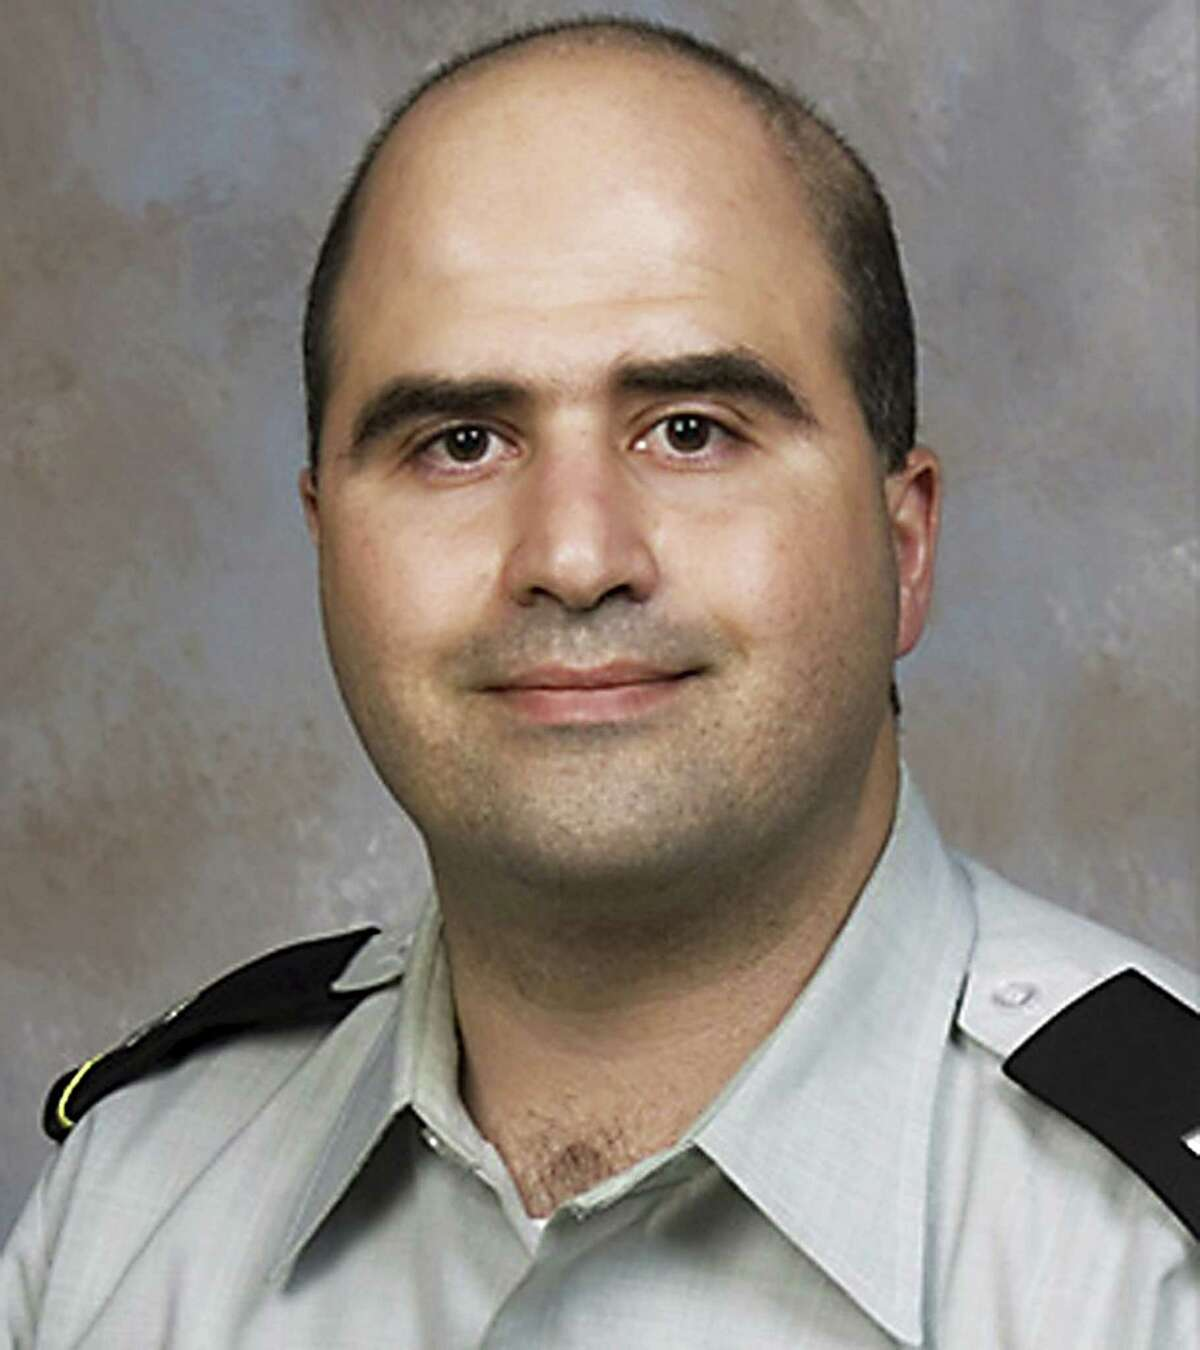 (FILES)This undated handout photo provided by the US Uniformed Services University of the Health Sciences shows US Army Major Nidal Hasan. A US military court on August 15, 2012 delayed the trial of an officer accused of killing 13 people in a shooting spree on his base while judges decide if he can be forcibly shaved. Major Nidal Hasan, a former army psychiatrist, is accused of carrying out the November 2009 shooting rampage at Fort Hood, an attack that raised fears of homegrown extremism and Al-Qaeda recruitment within the armed forces. An American of Palestinian heritage, Hasan tried to plead guilty on 13 counts of premeditated murder, but Colonel Gregory Gross, who is hearing the case, said military law does not allow guilty pleas in death penalty trials. Gross entered a not guilty plea instead. AFP PHOTO/HANDOUT == GETTY OUT = RESTRICTED TO EDITORIAL USE - MANDATORY CREDIT